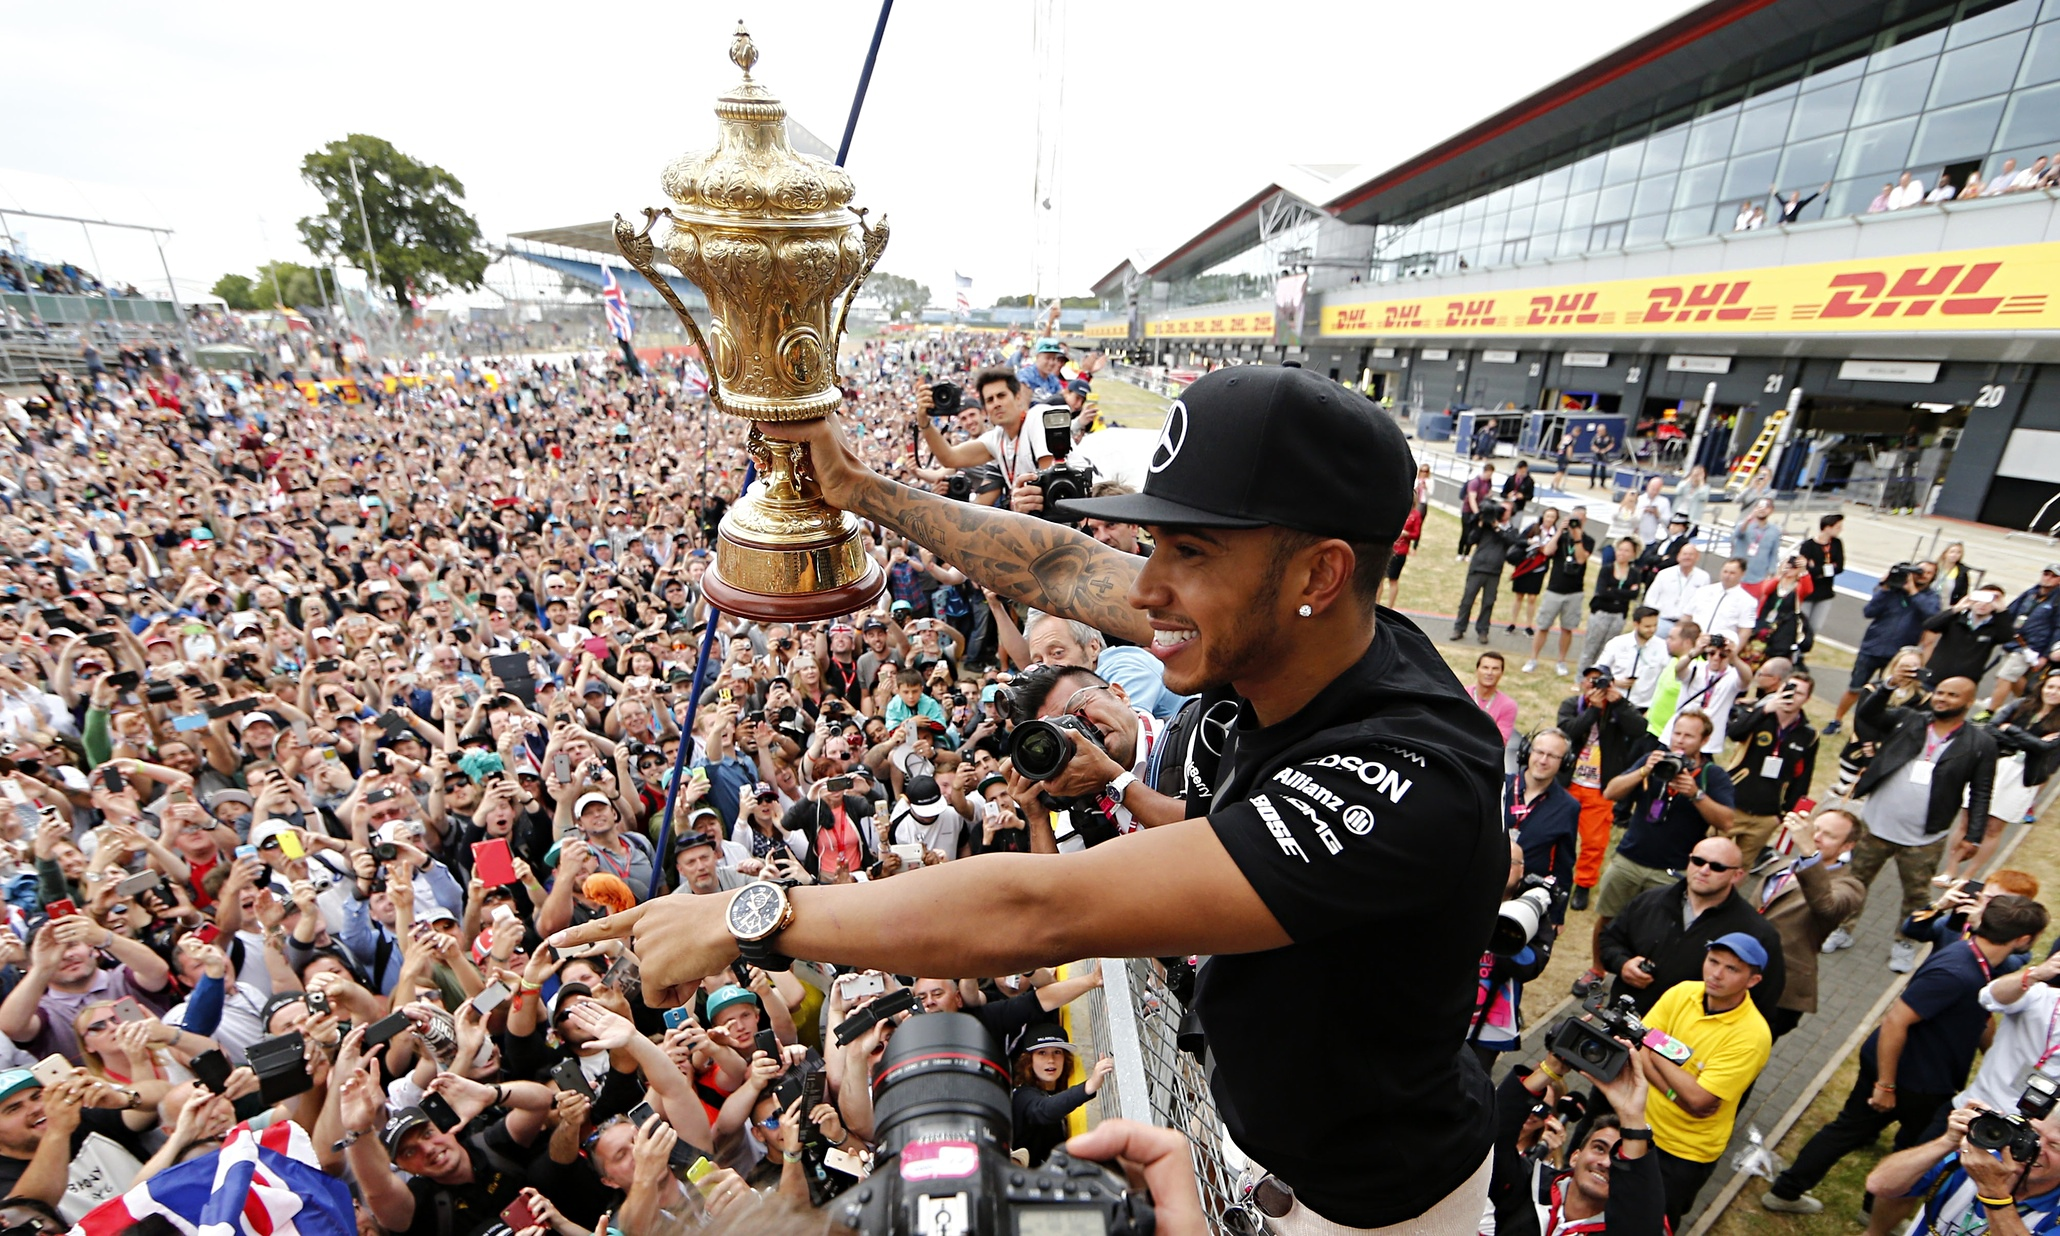 Lewis Hamilton shares a moment with the assembled masses at Silverstone after admitting he struggled